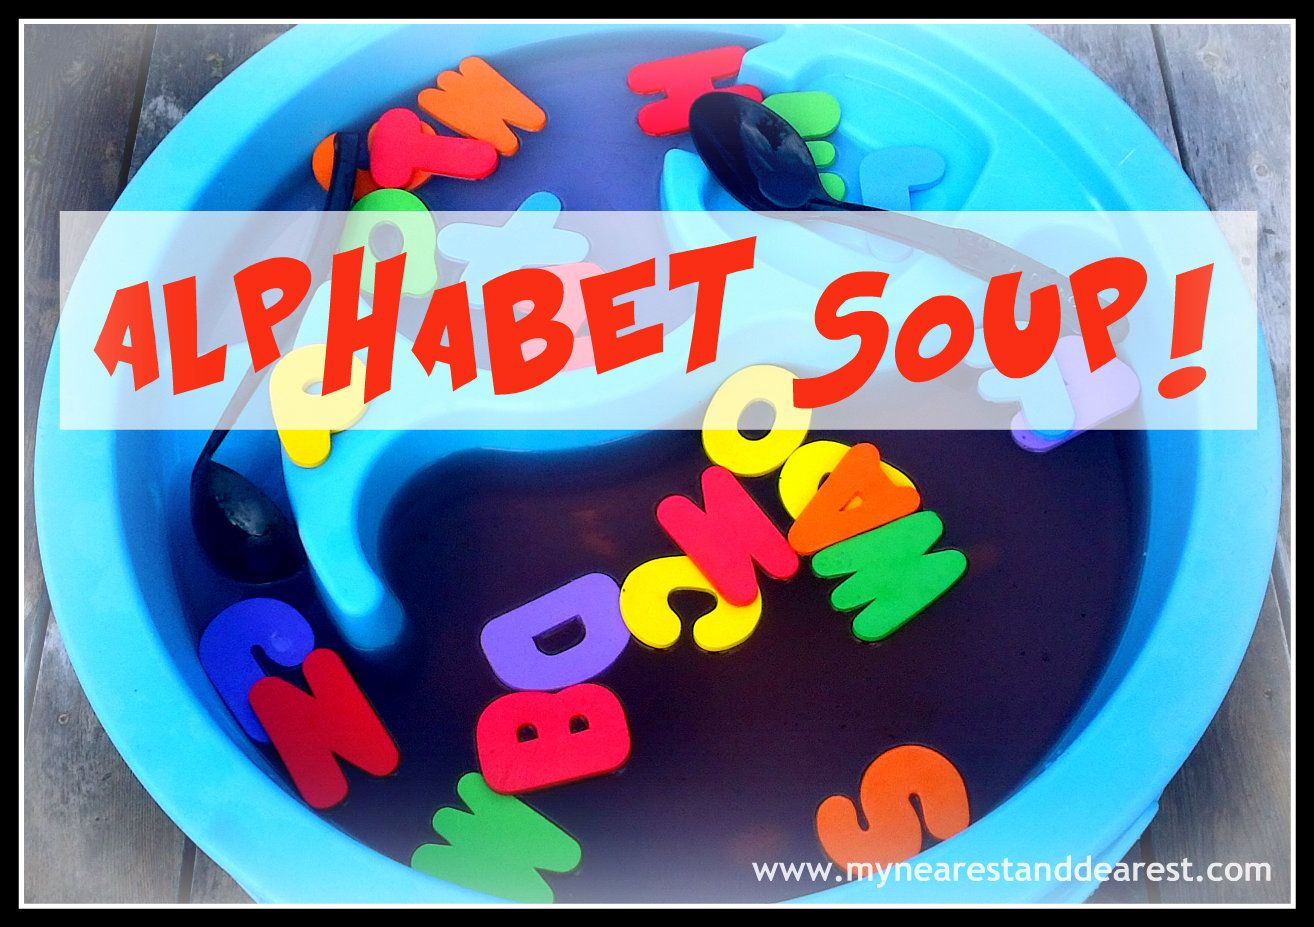 Alphabet Soup Great Way To Practice Letter Recognition And Letter Sounds